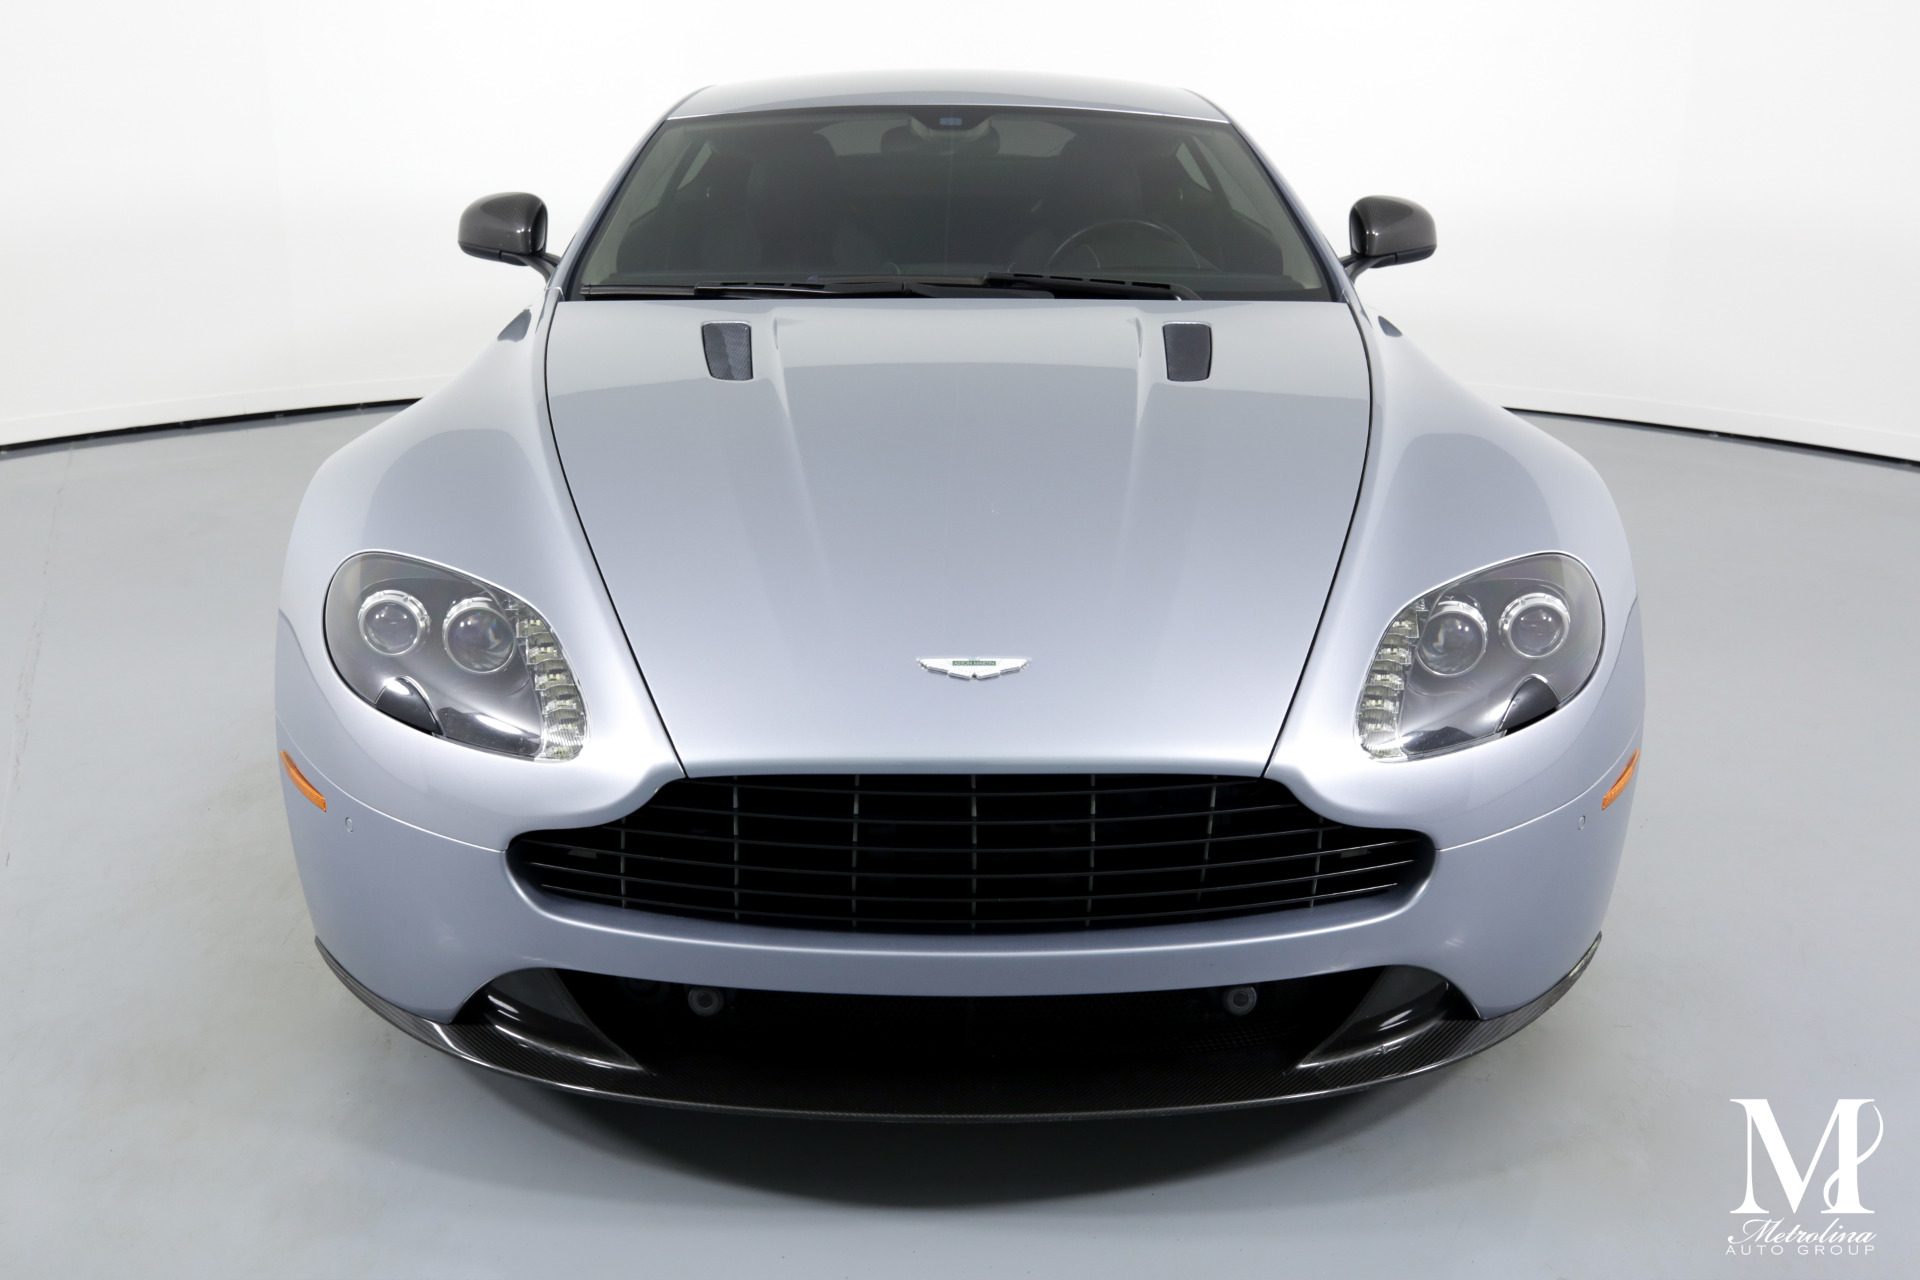 Used 2014 Aston Martin V8 Vantage for sale $49,996 at Metrolina Auto Group in Charlotte NC 28217 - 3